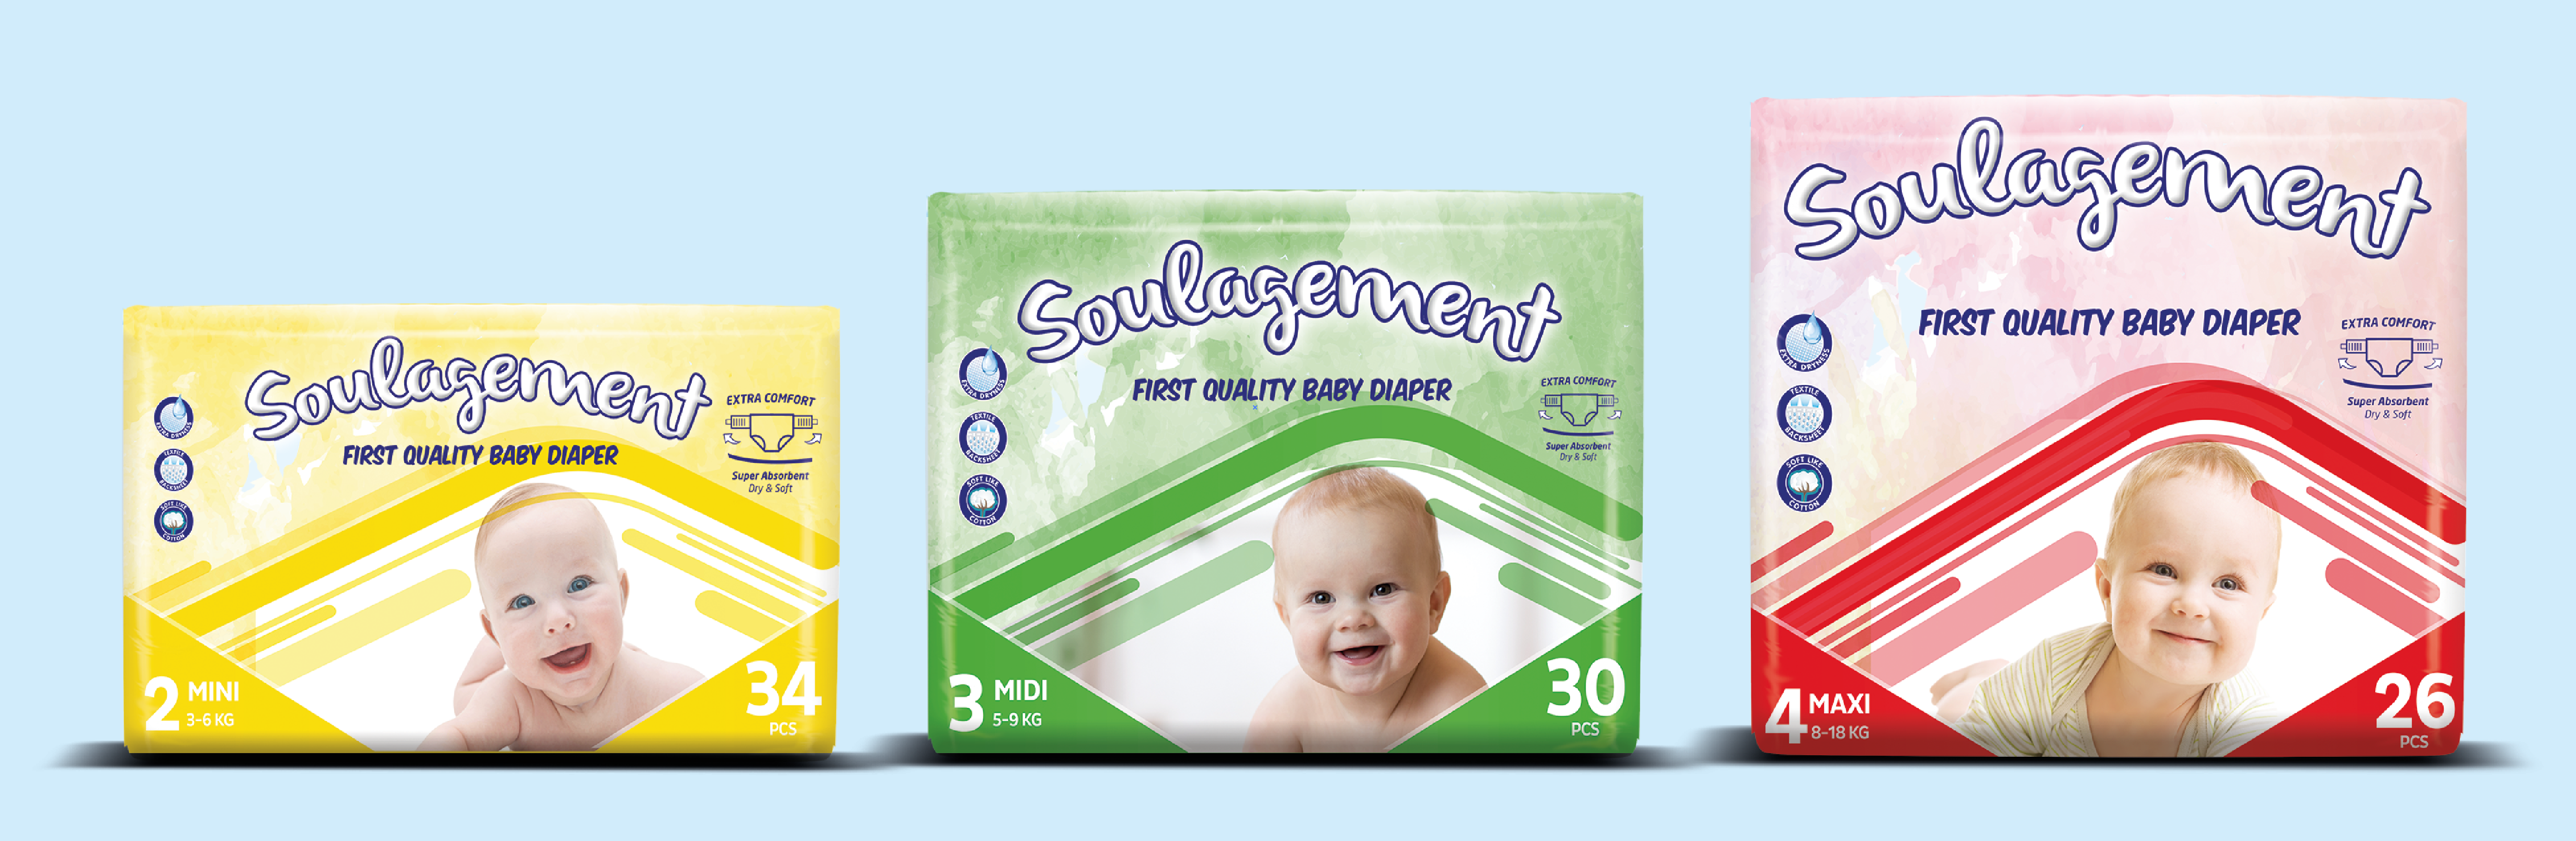 Soulagement Baby Diaper